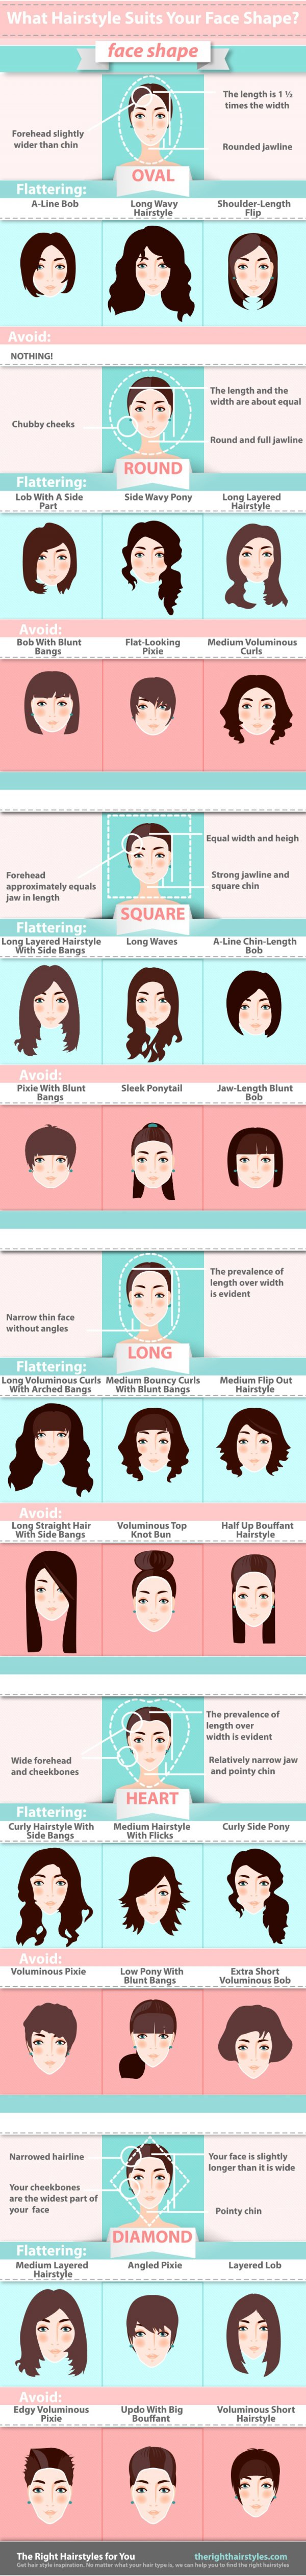 What Hairstyle Will Suit Your Face Shape?